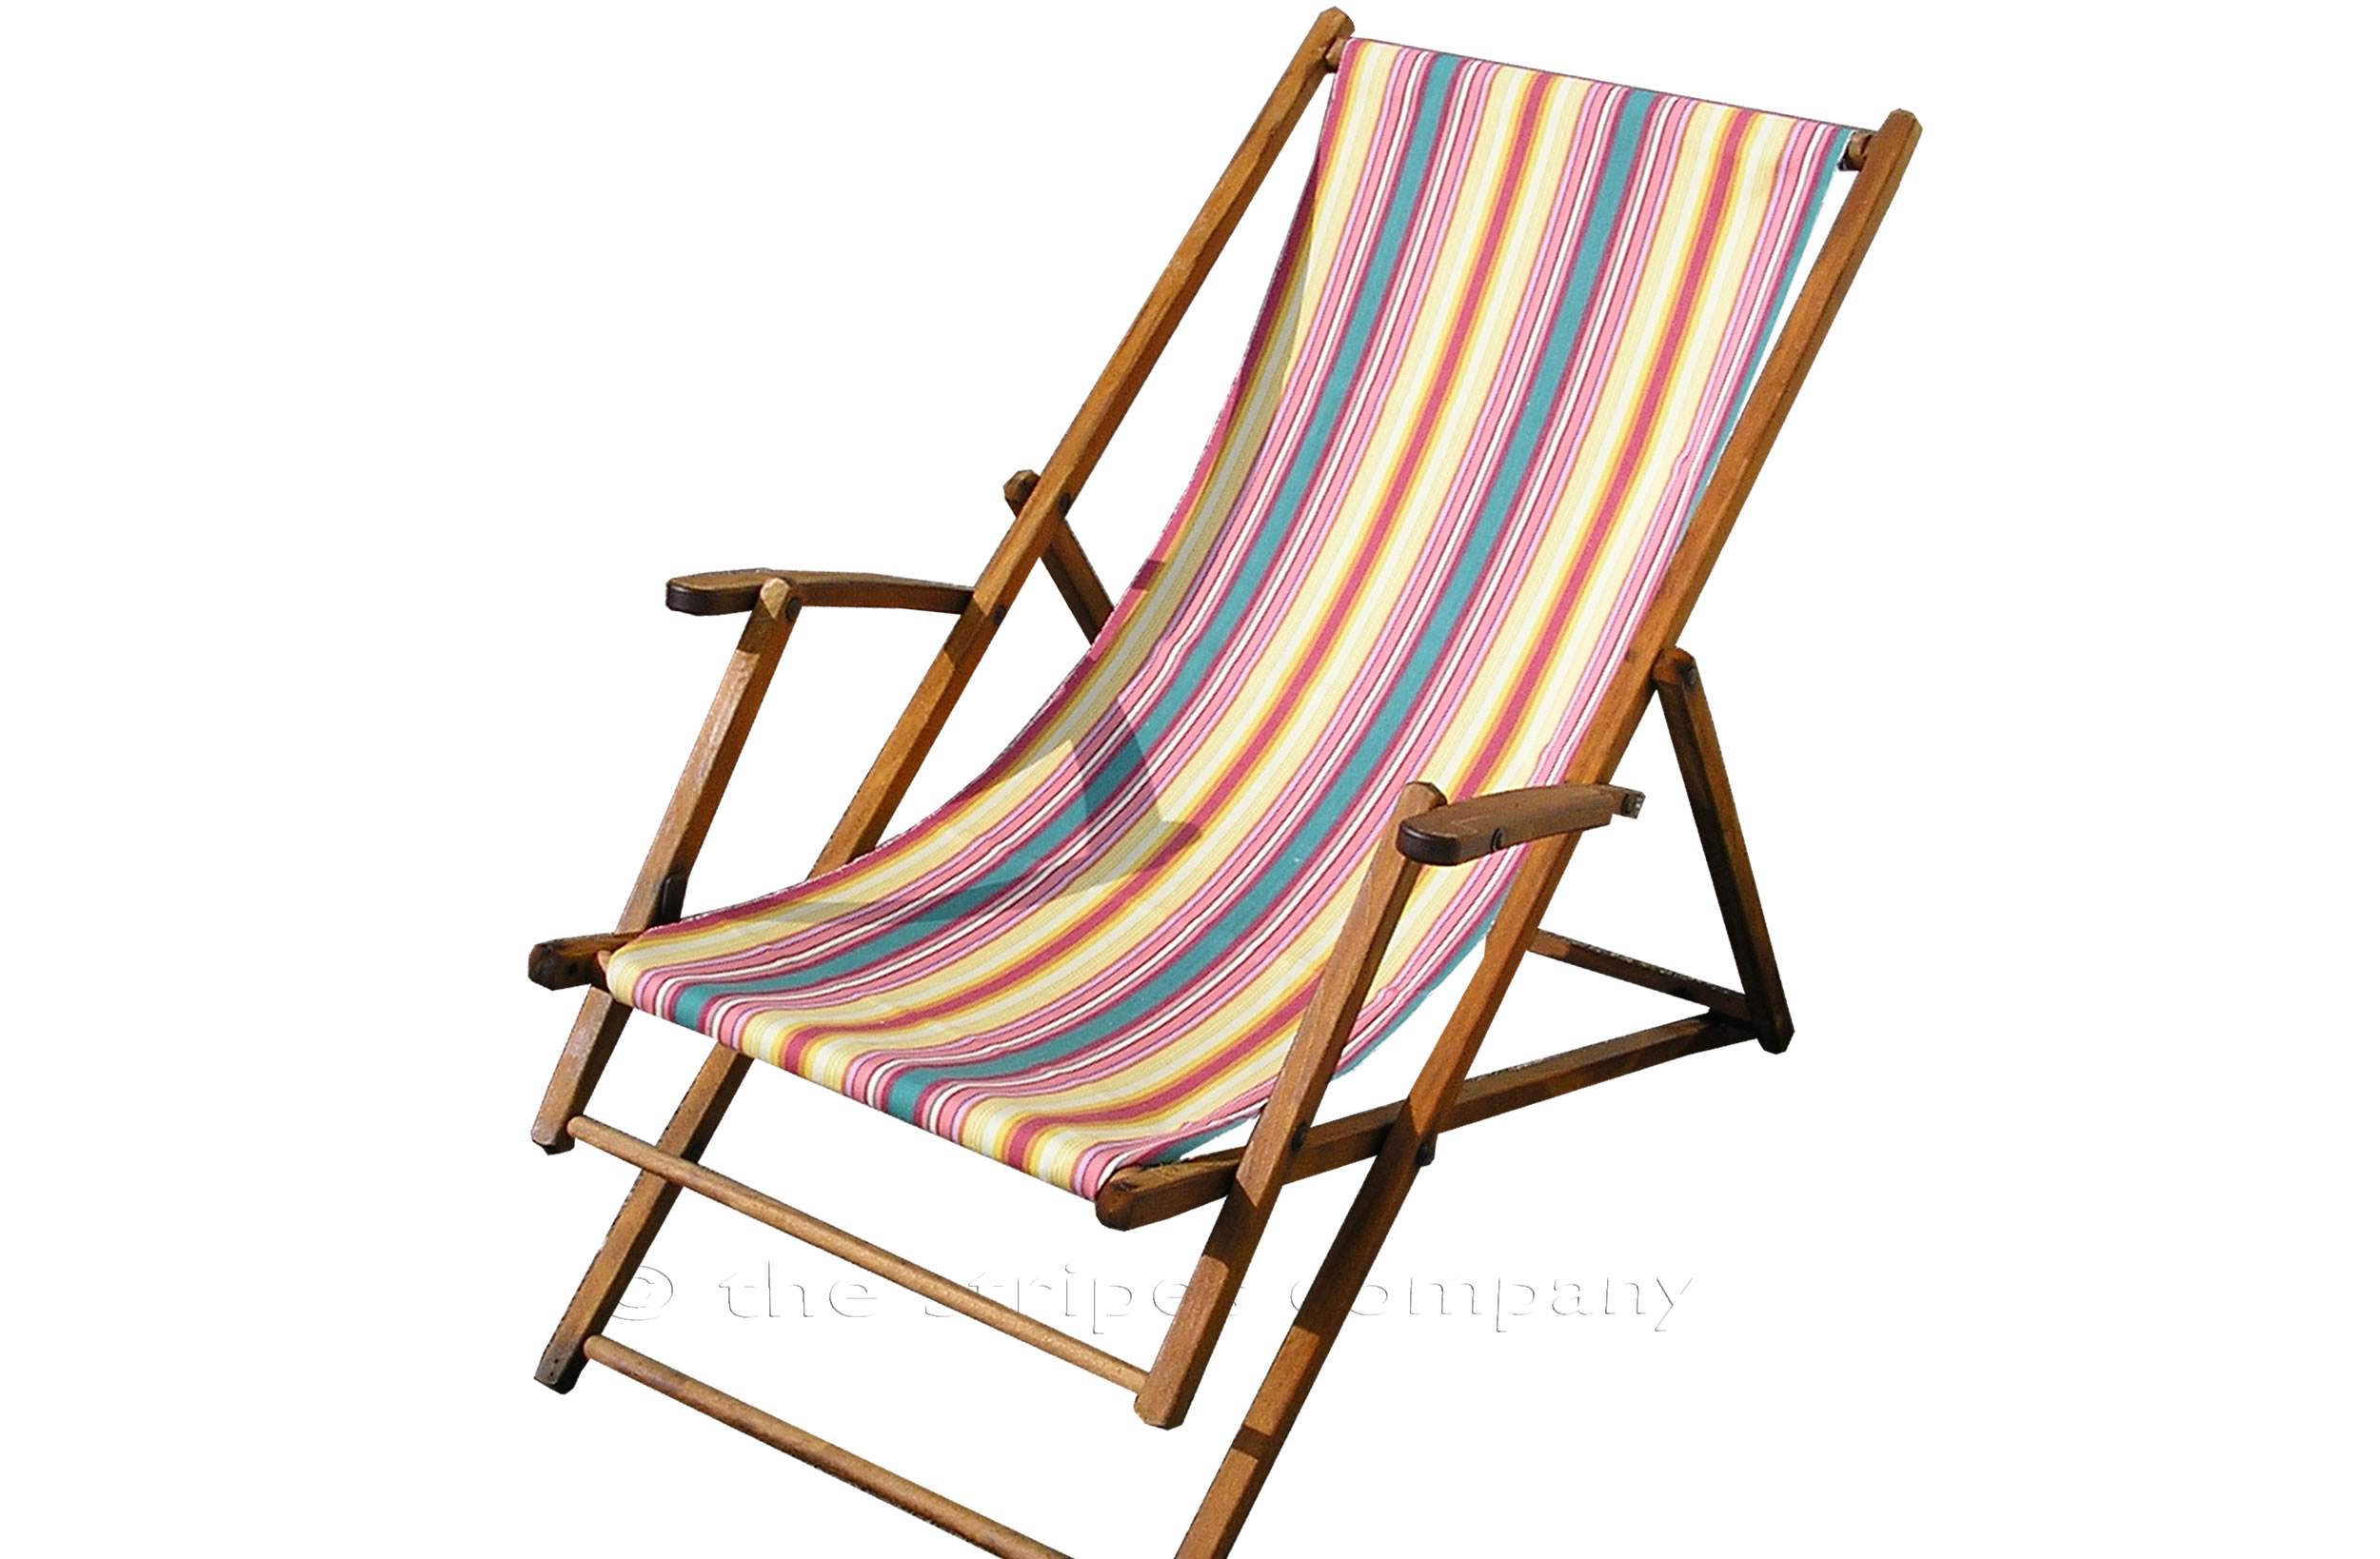 Vintage Wooden Deckchairs - Deck Chairs Vintage Wooden Deckchairs Traditional Folding Deck